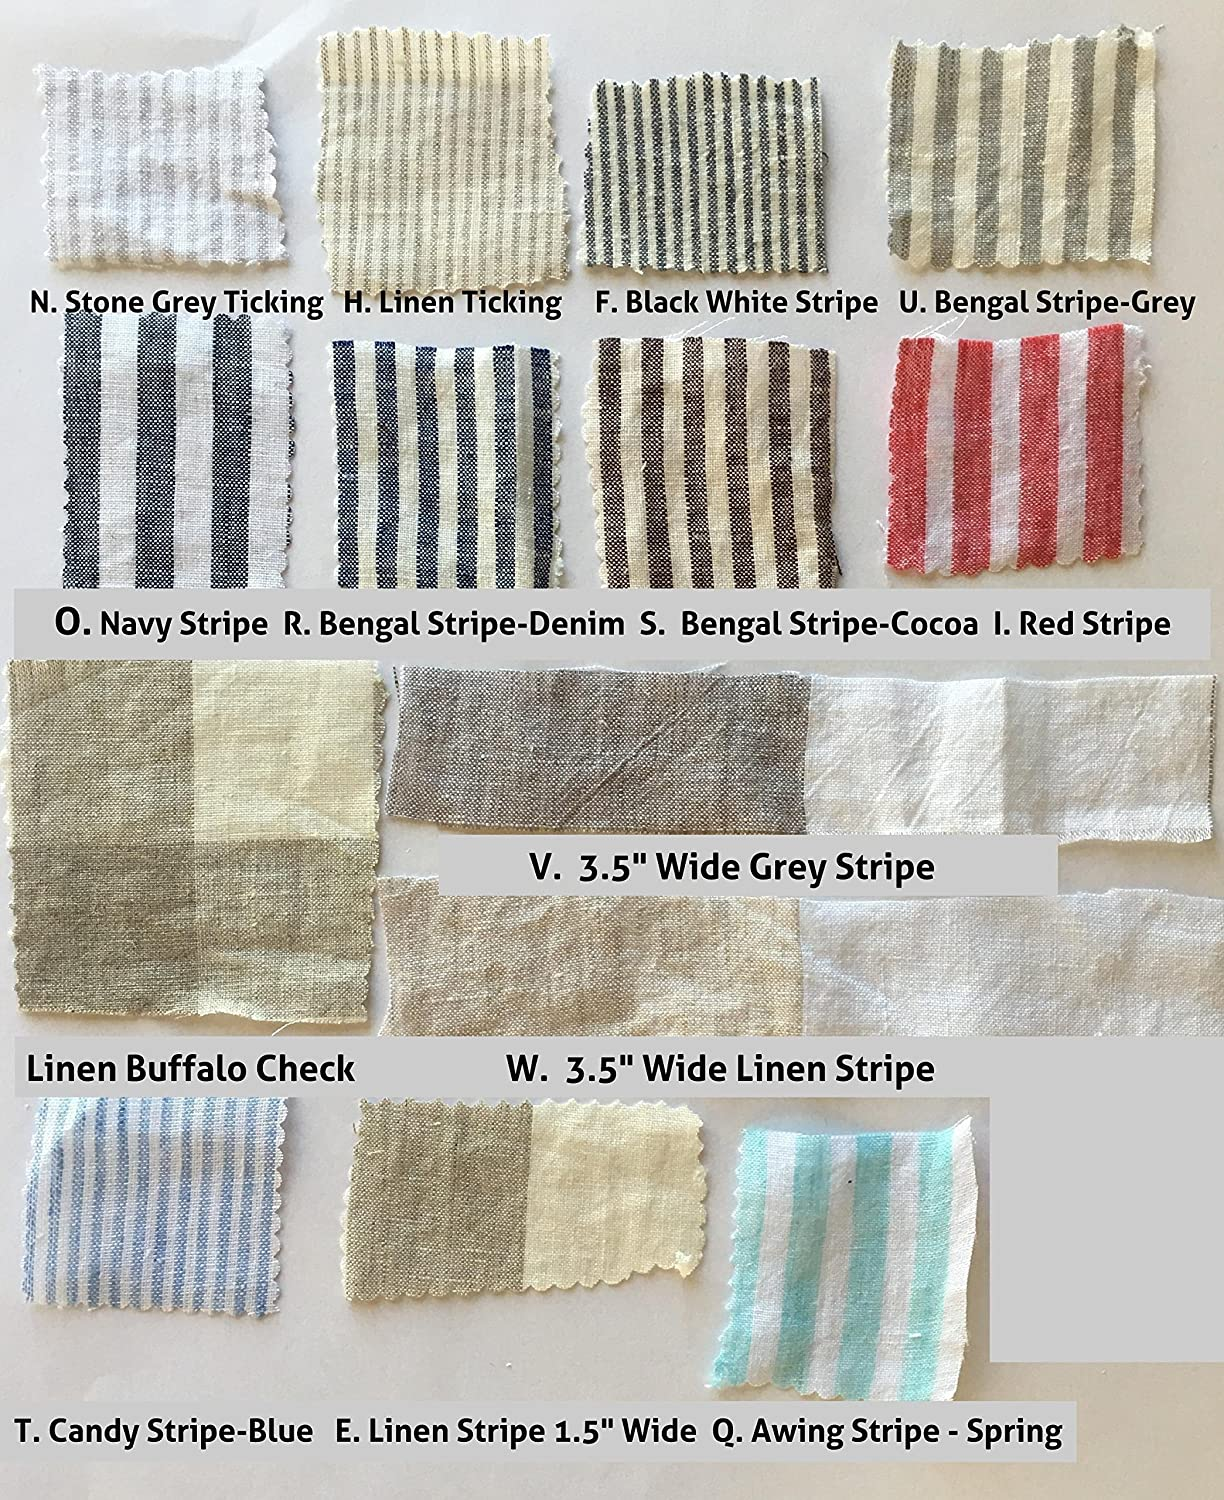 Here s just a sample of the buffalo check fabric options from fabric - Amazon Com Linen Swatches Linen Fabric Swatch Full Color Cataglogue For Our Linen Bedding Linen Baby Bedding Linen Home Products Full Credit Towards